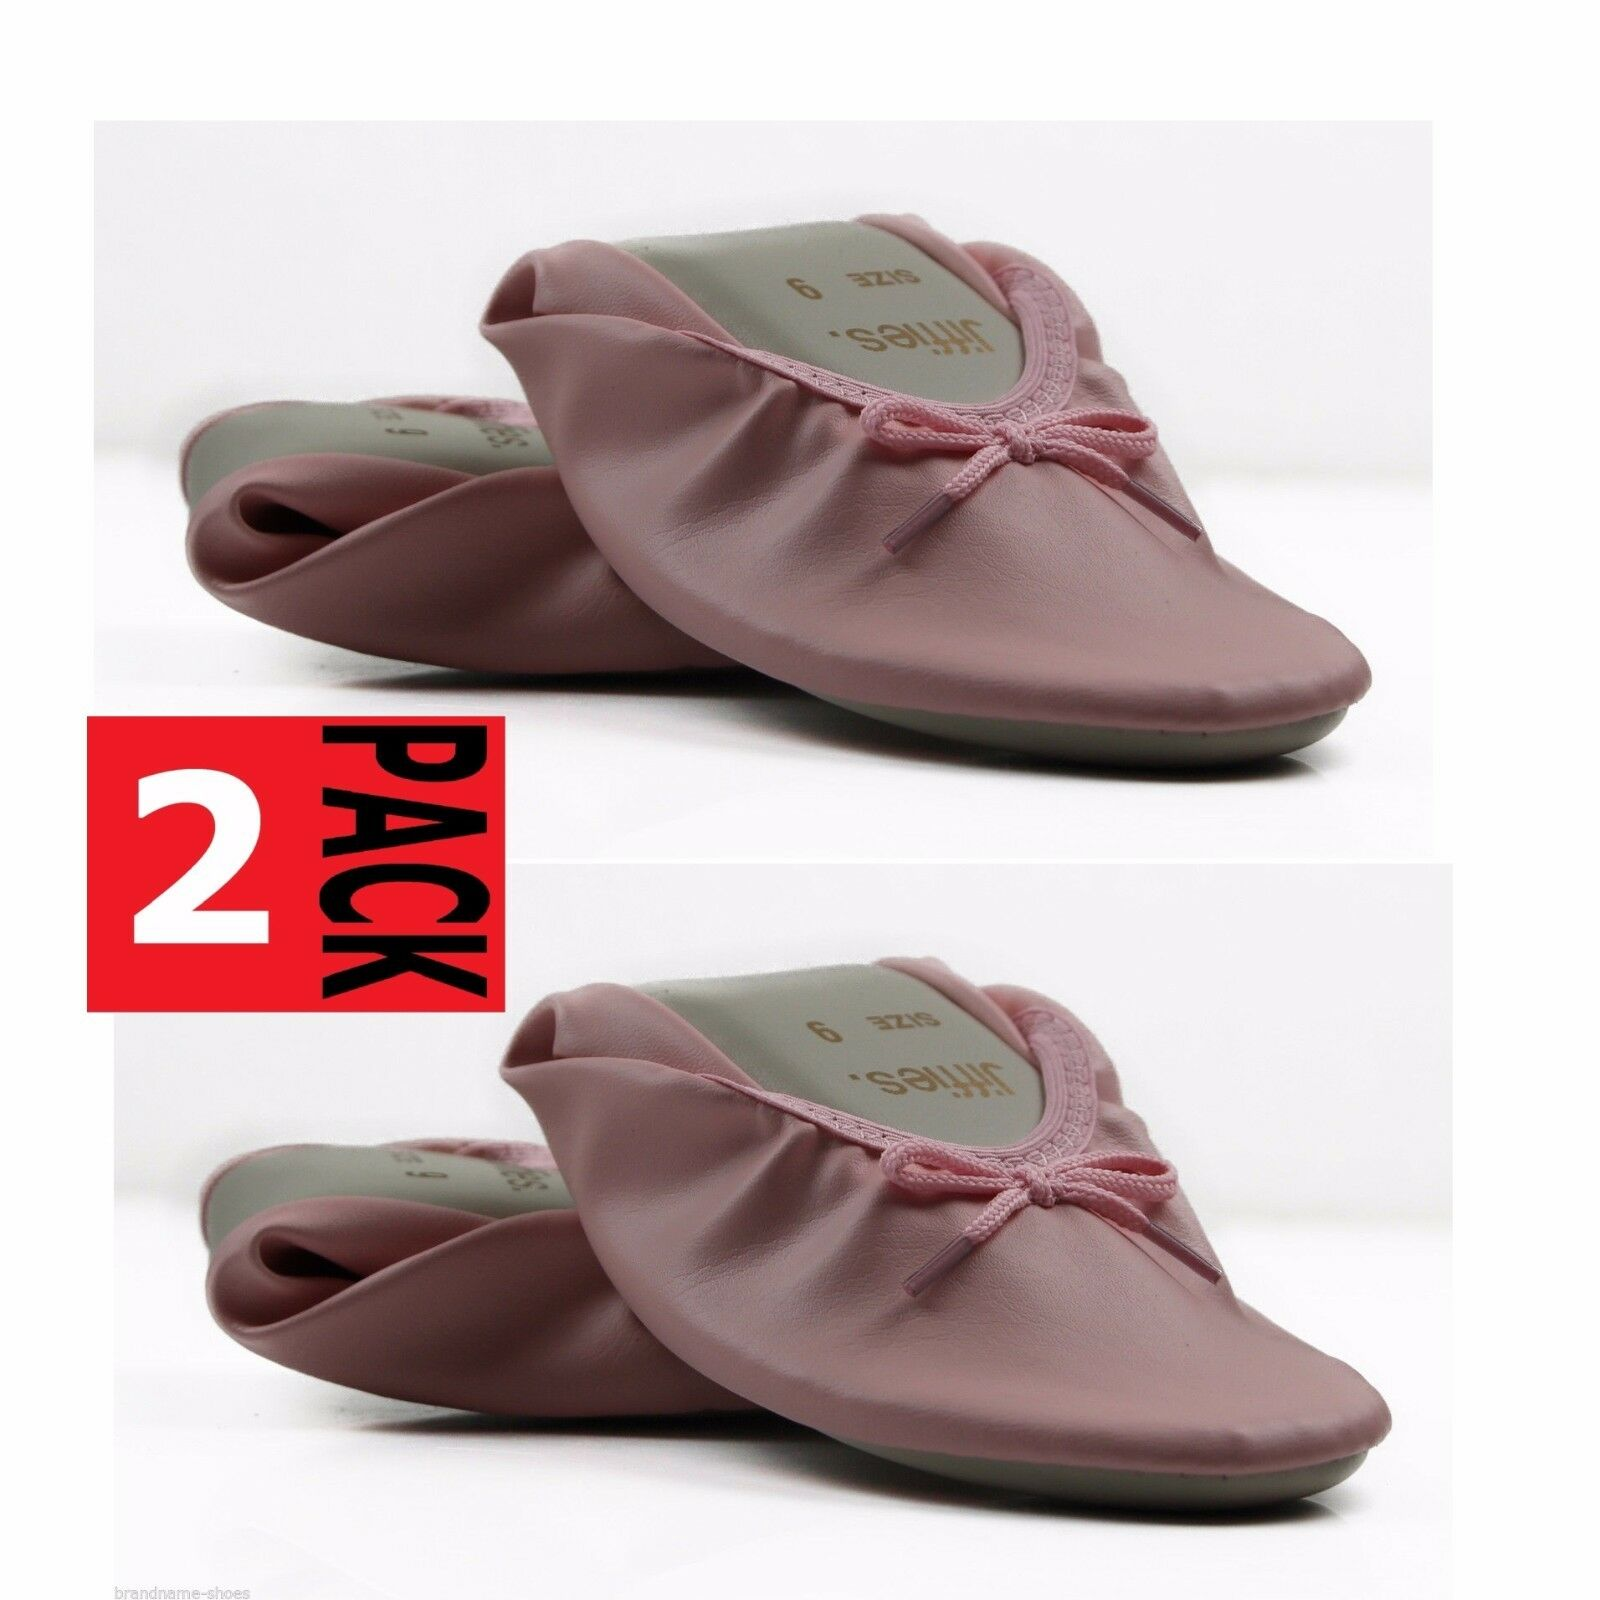 2 x PAIRS NEW PINK GROSBY JIFFIES WOMENS LADIES BALLET DANCE FLAT SLIPPER SHOES